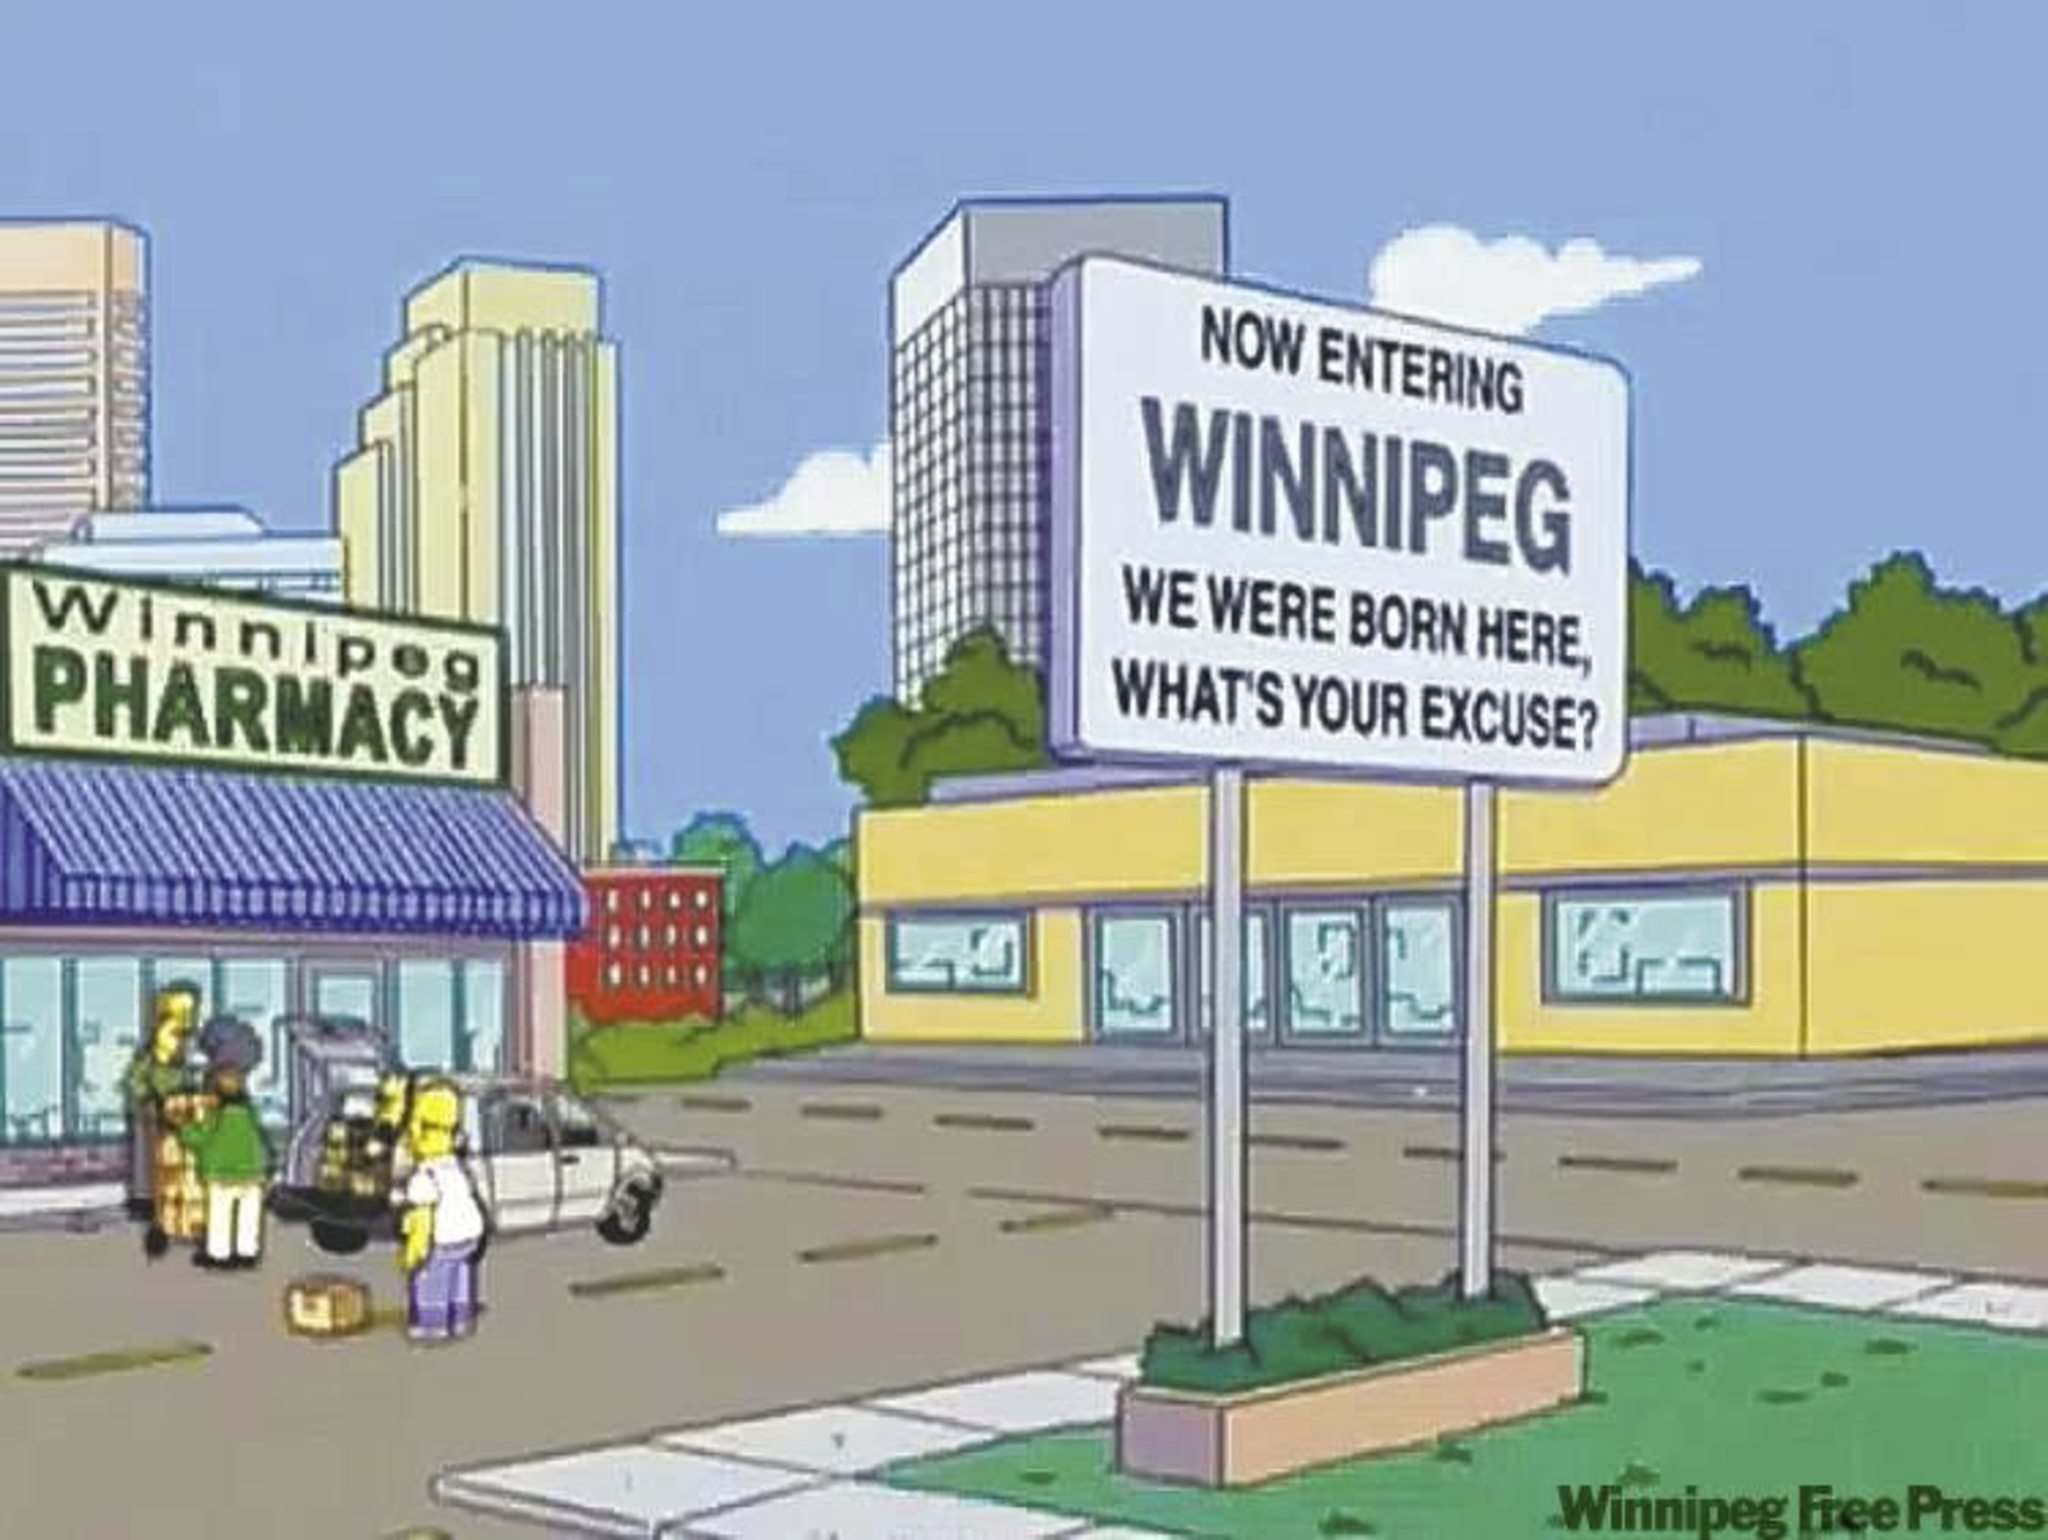 The Simpsons had some fun at Winnipeg's expense, but who cares? We were on The Simpsons!</p></p>